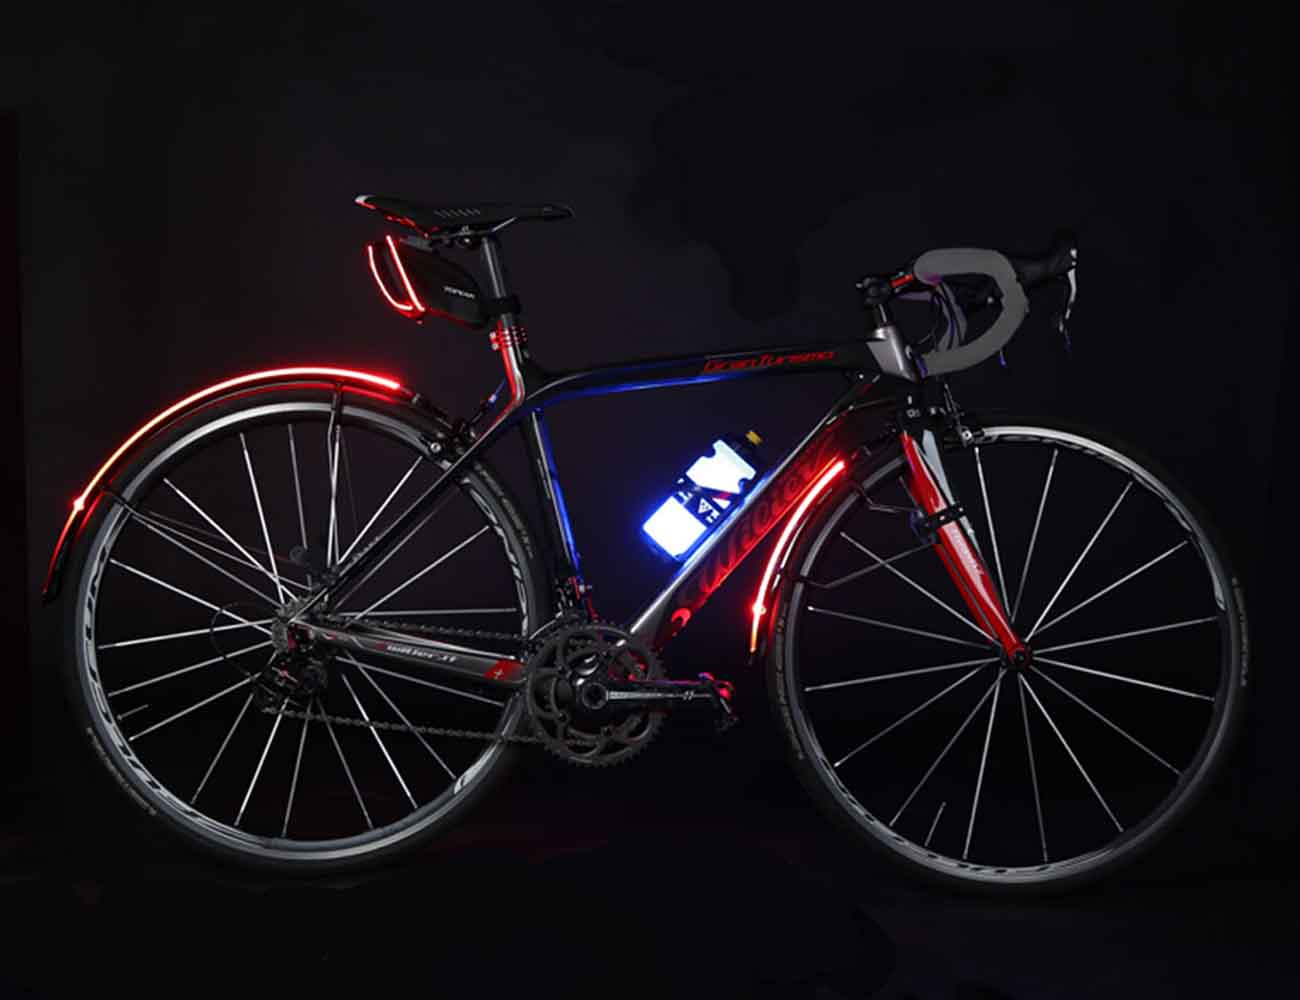 iGlowCageB – Water Bottle and Cage With LED Light by Topeak